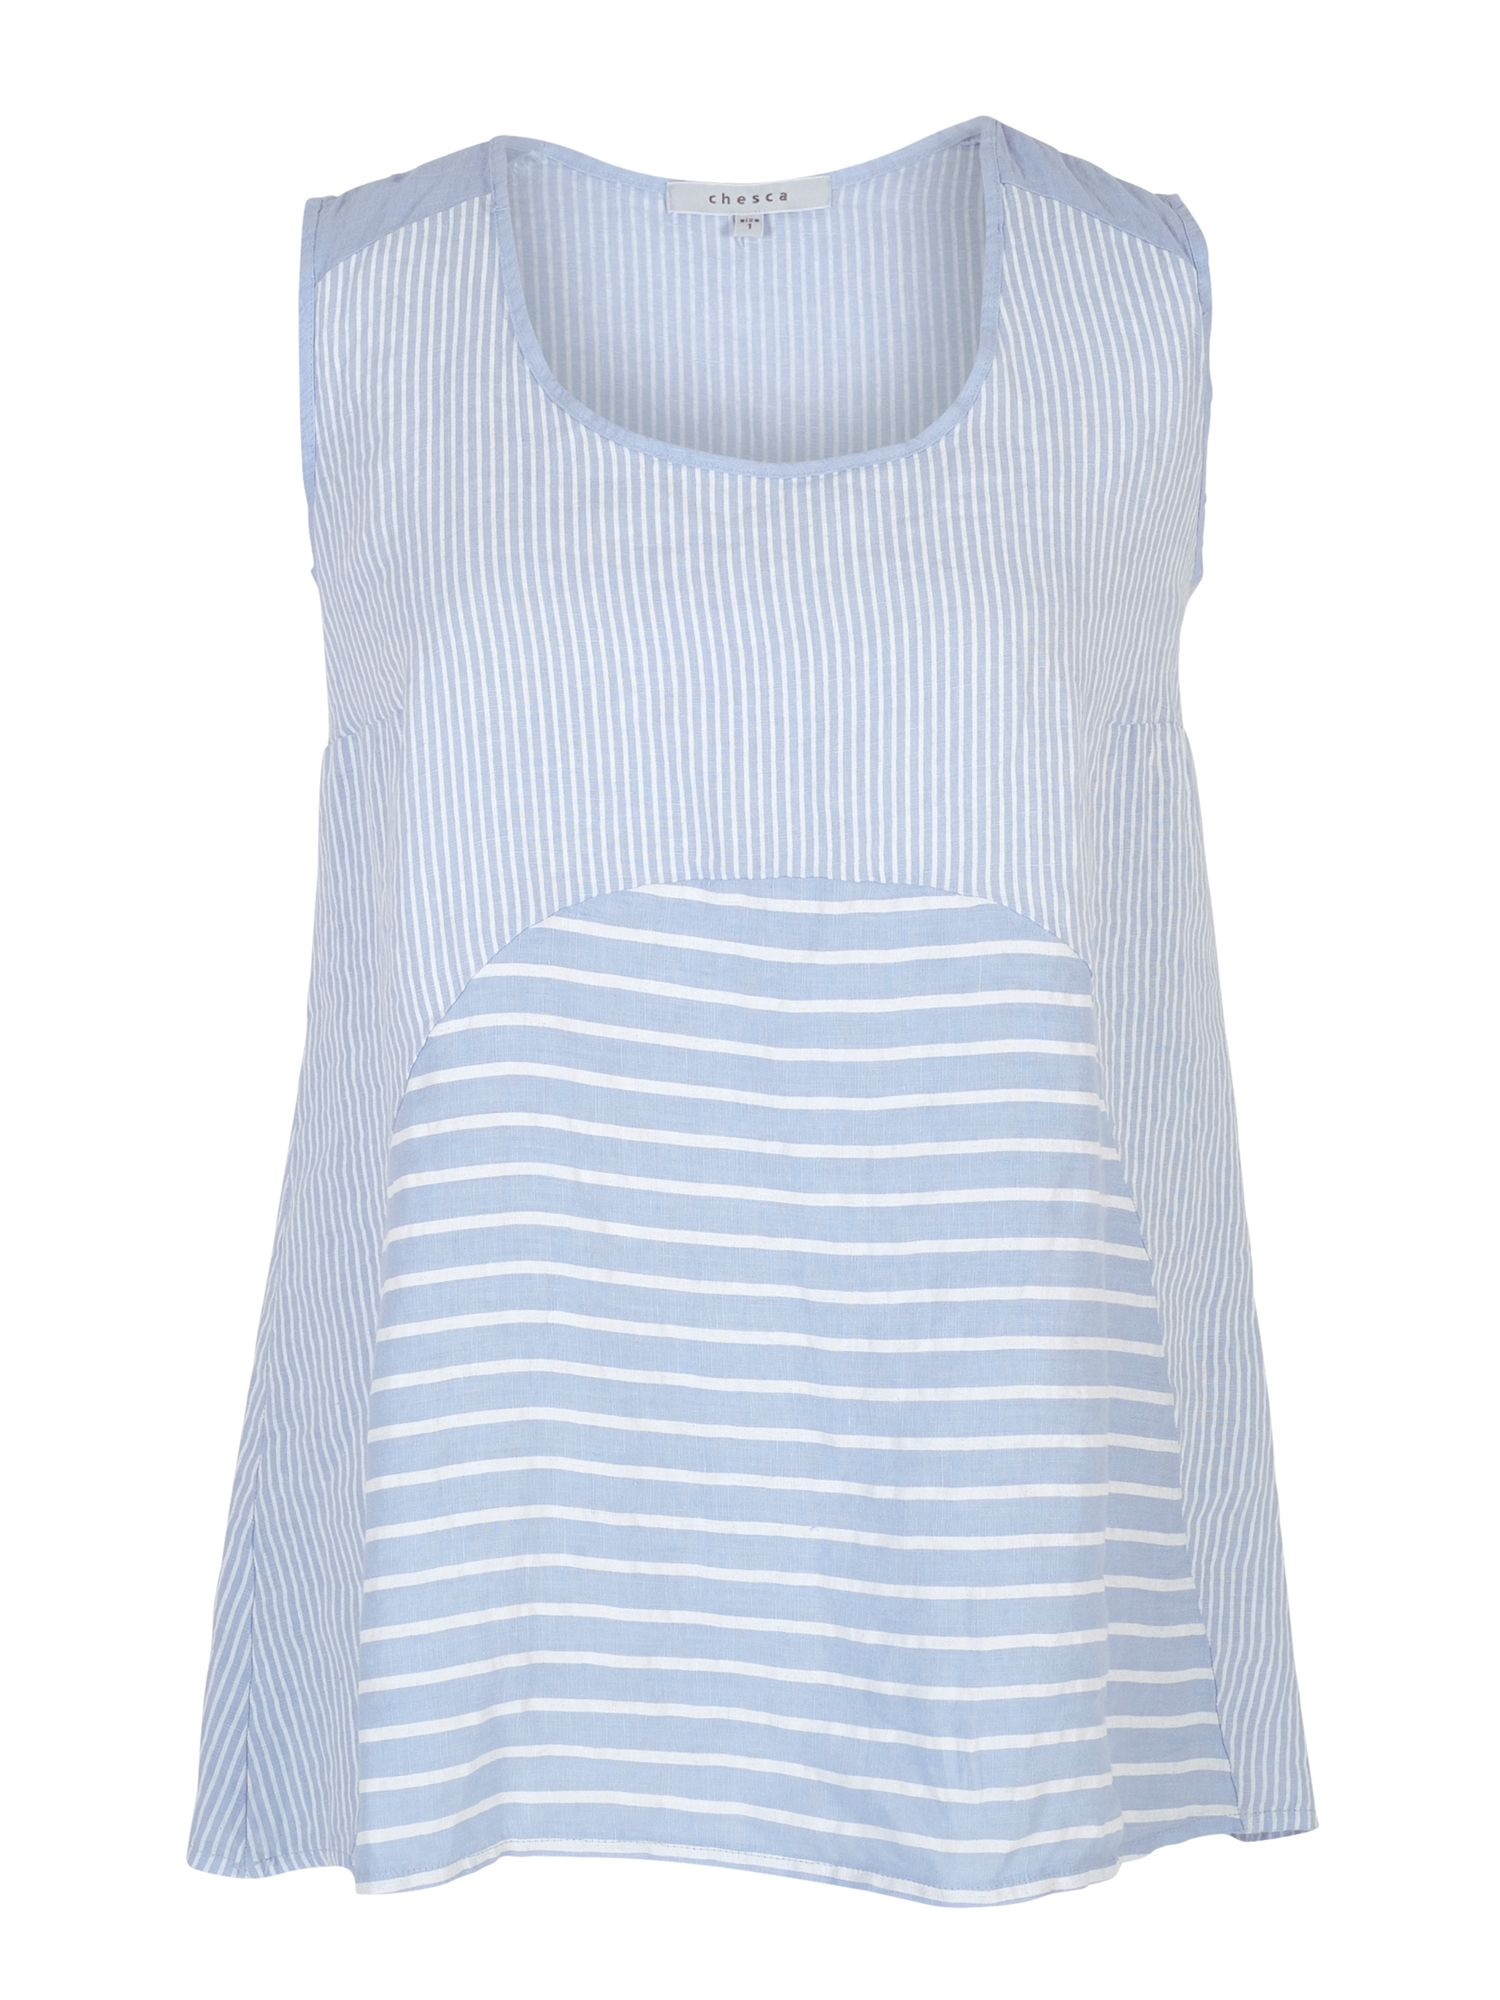 Chesca Mixed Stripe Linen Camisole, Blue